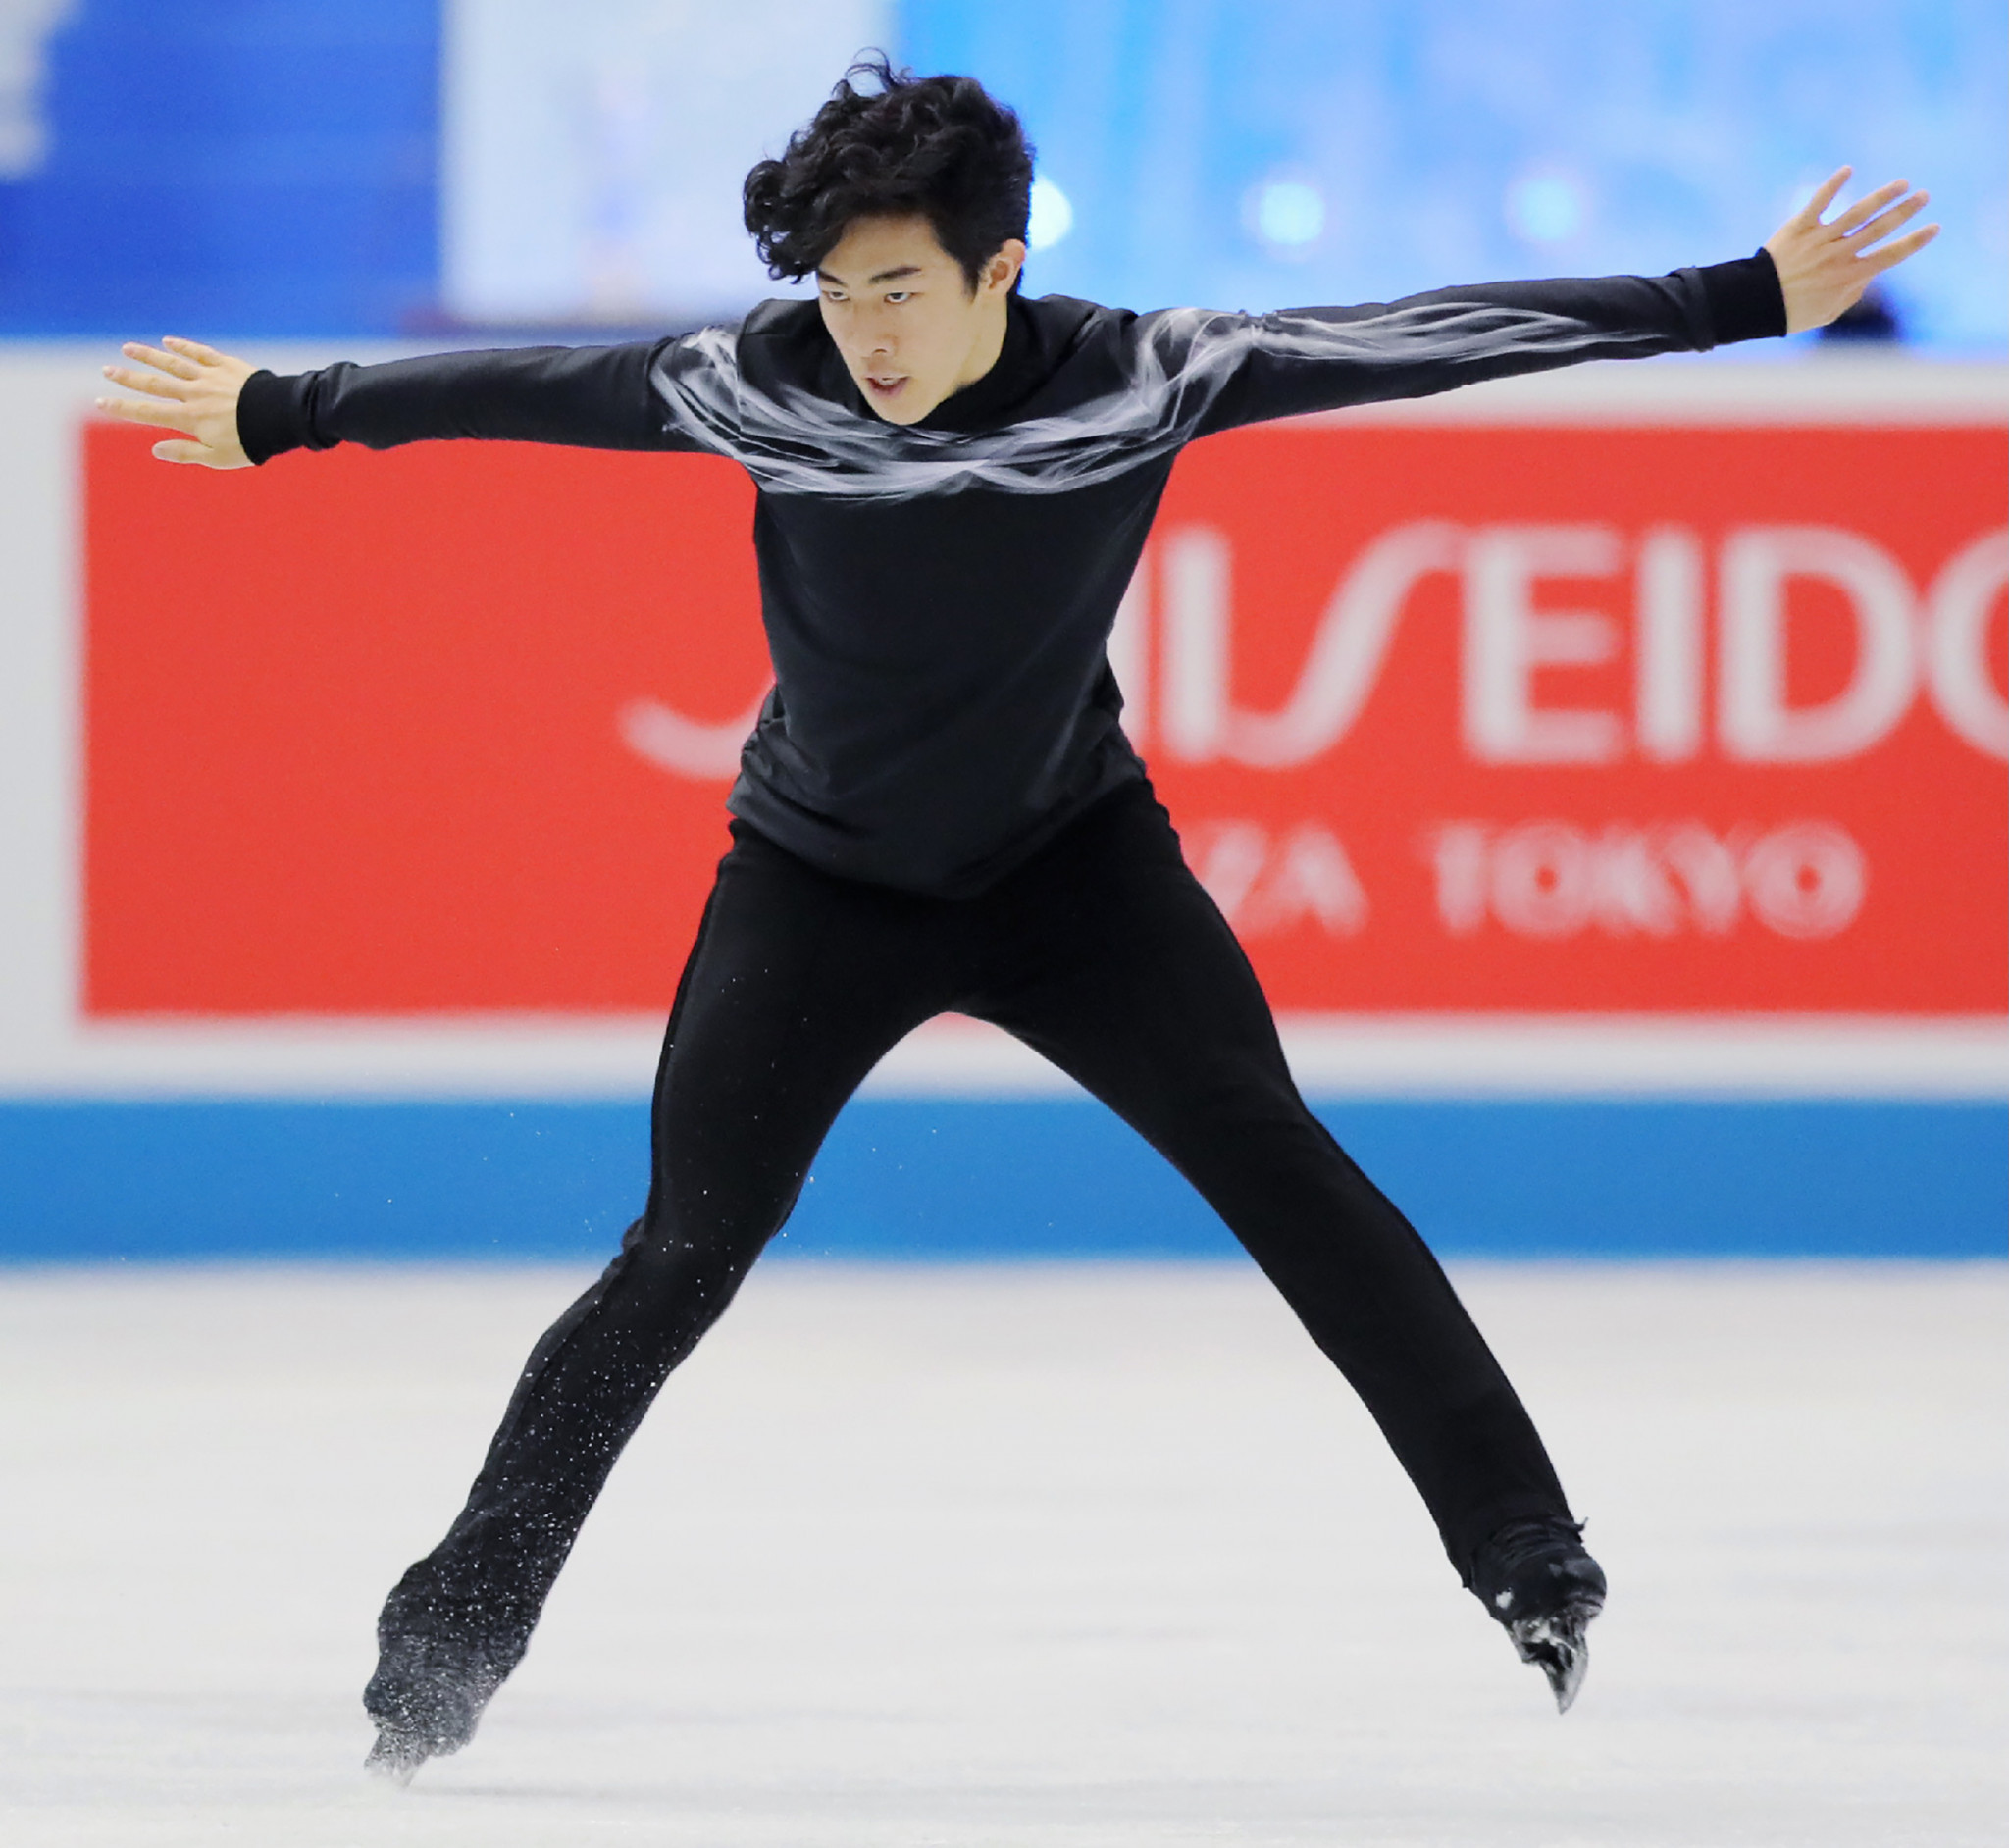 Double world champion Chen headlines Skate America in Las Vegas